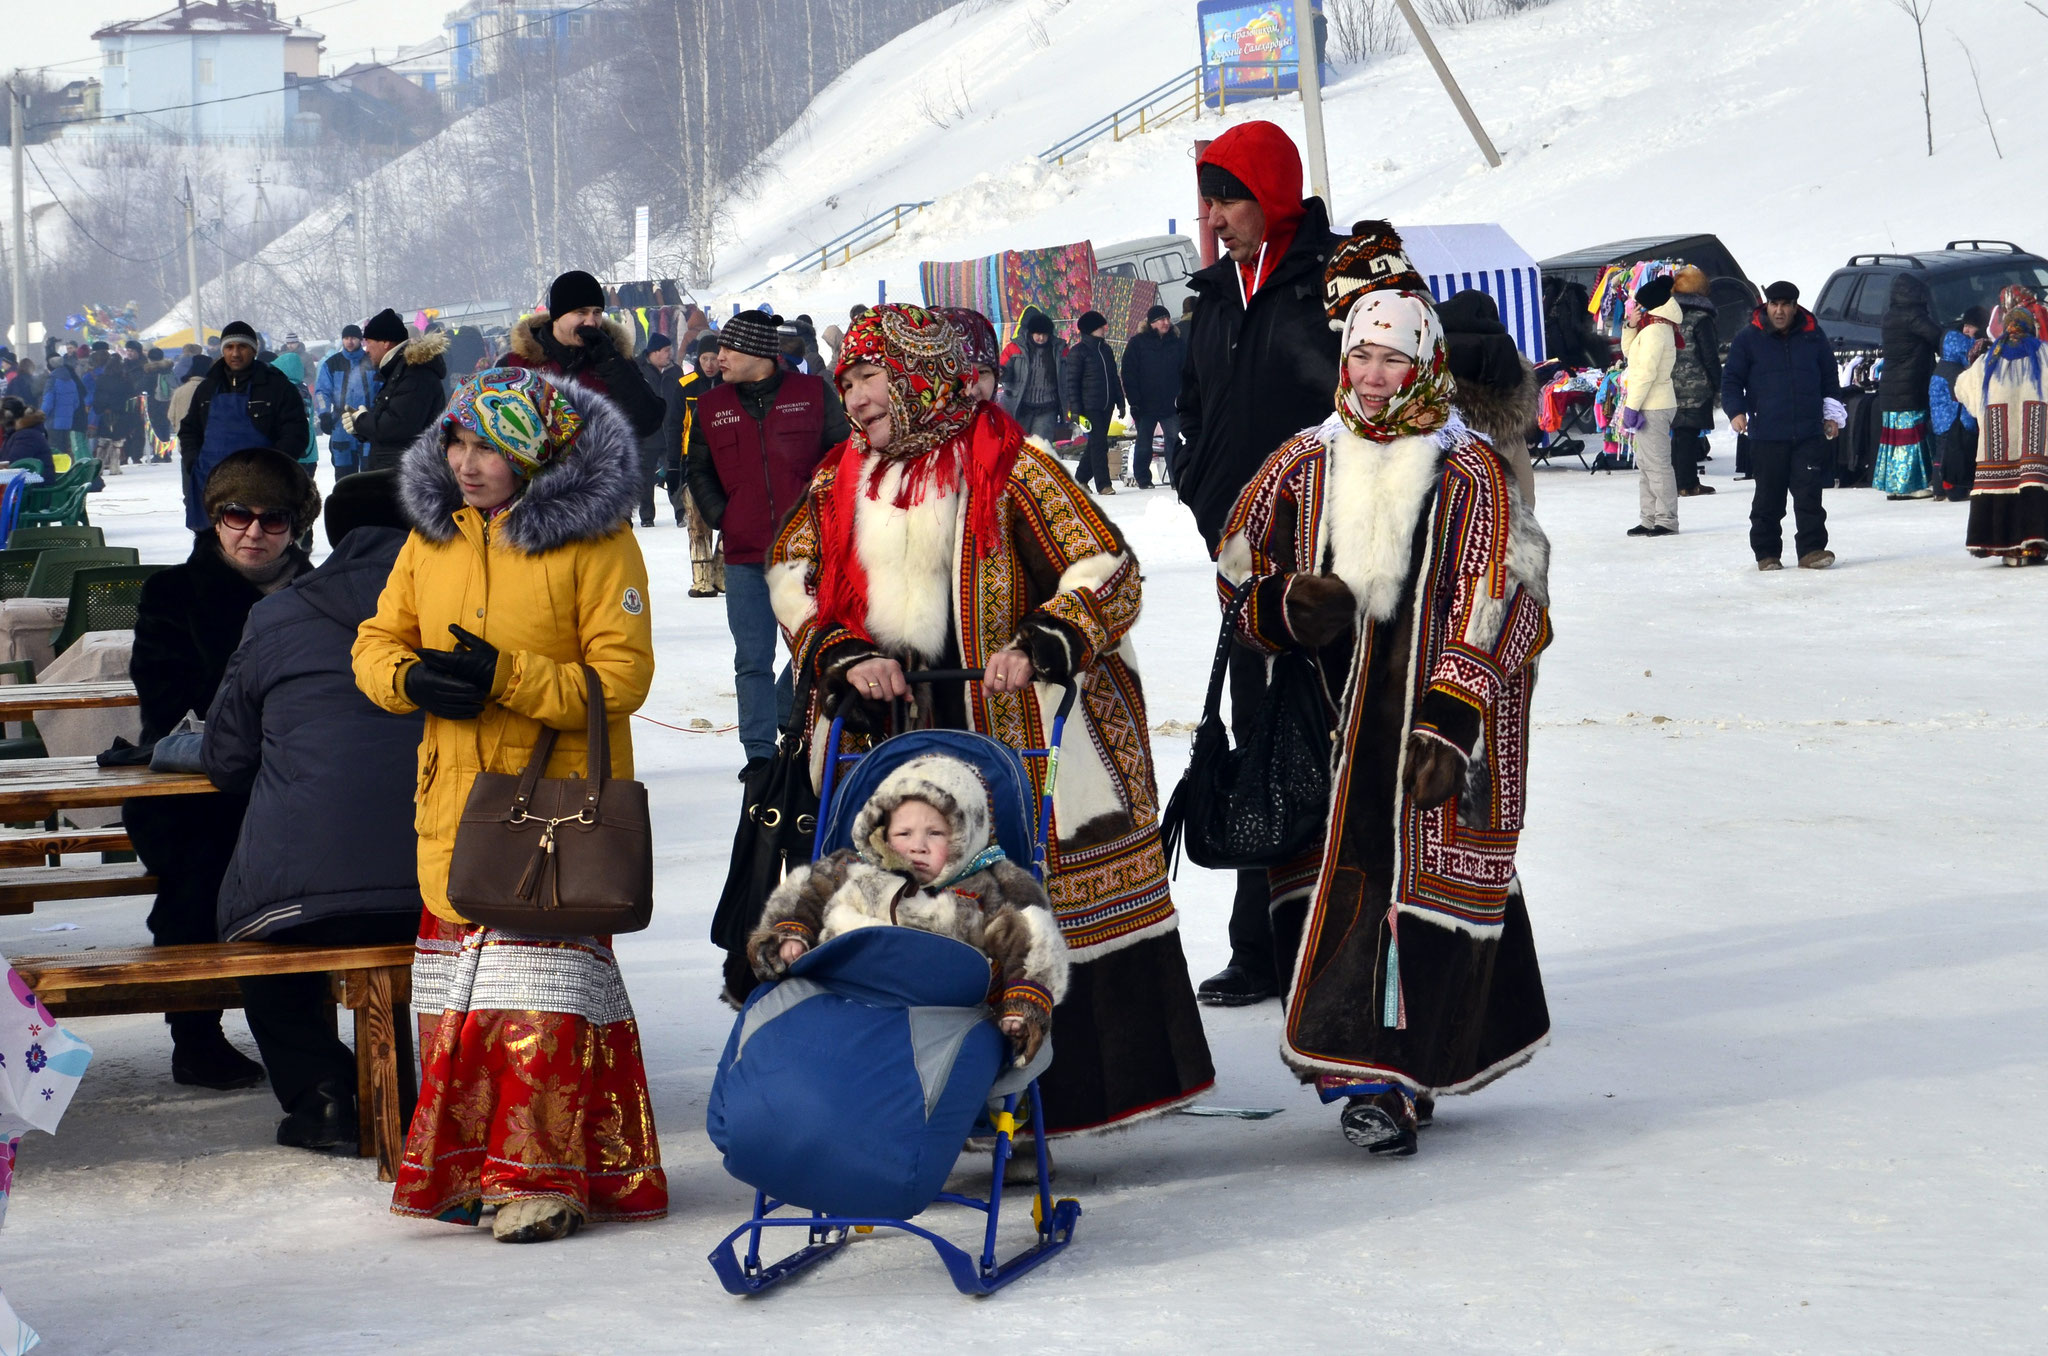 The reindeer herders in national clothes